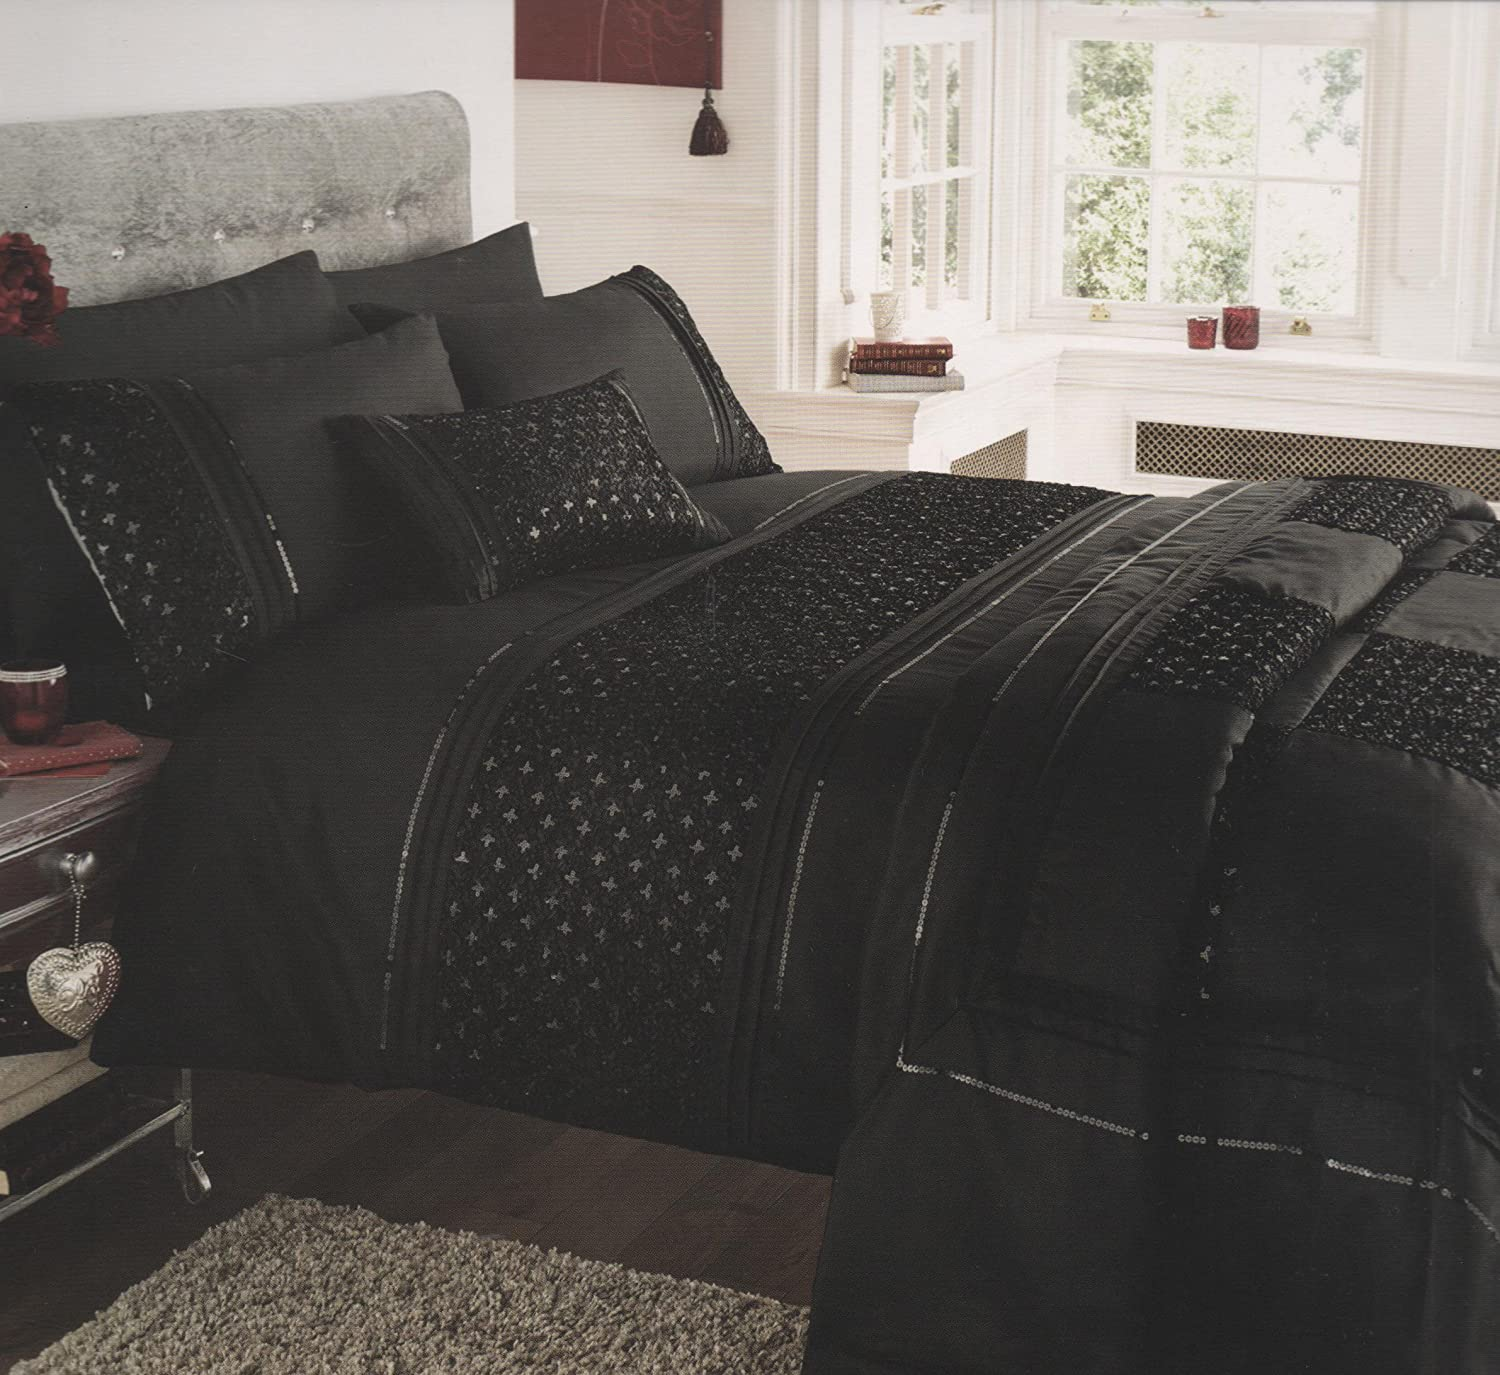 Luxurious Petra Black Duvet Cover Set - King Size - Embellished ... : king size bed quilt cover sets - Adamdwight.com